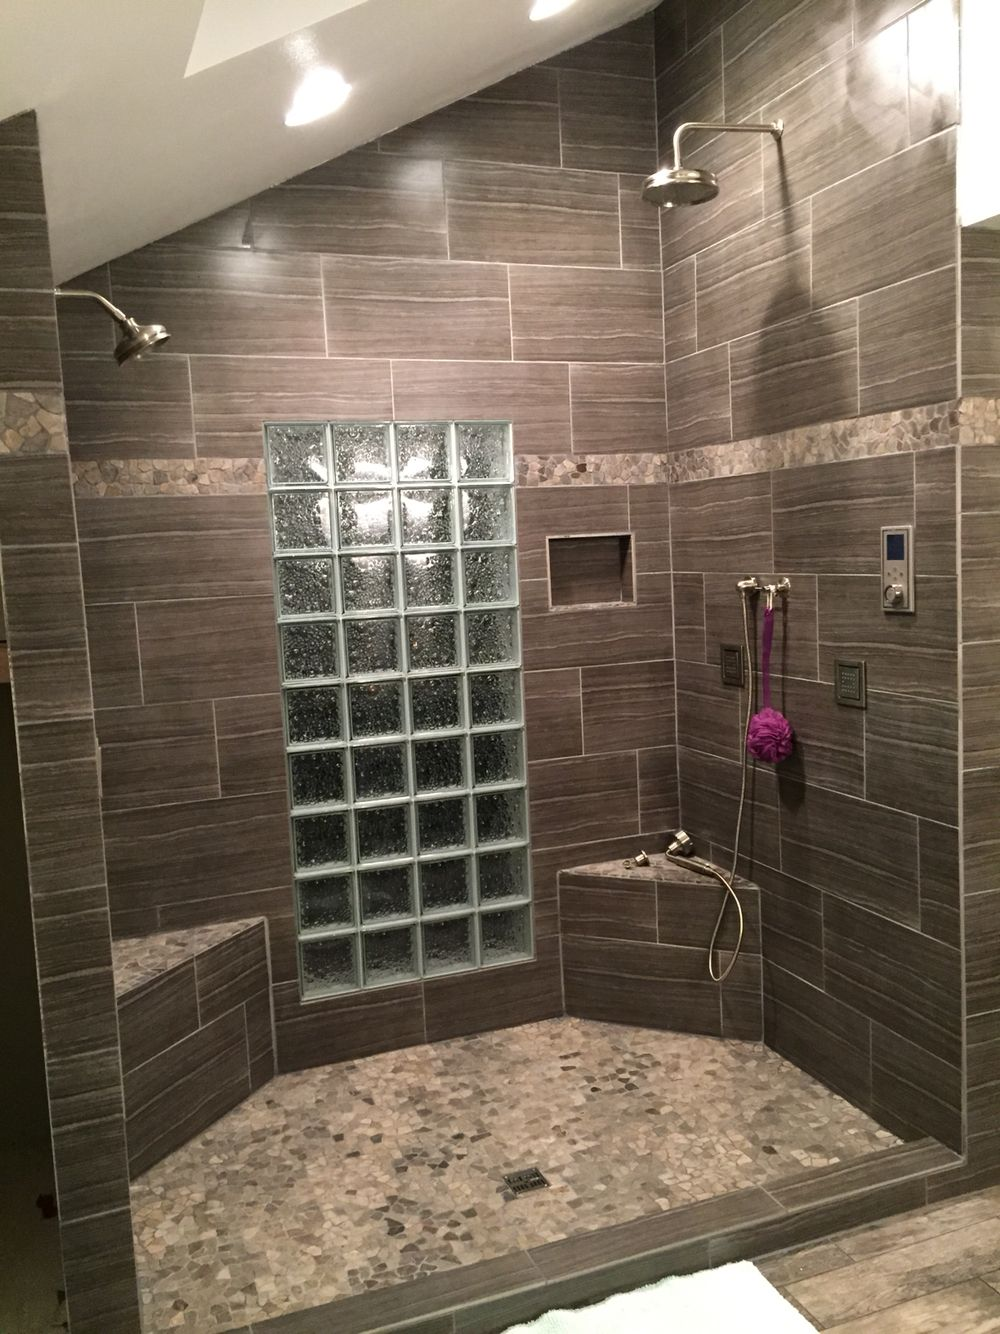 Double Shower Head And Four Body Sprays By The Plumbing Joint - Bathroom remodel renton wa